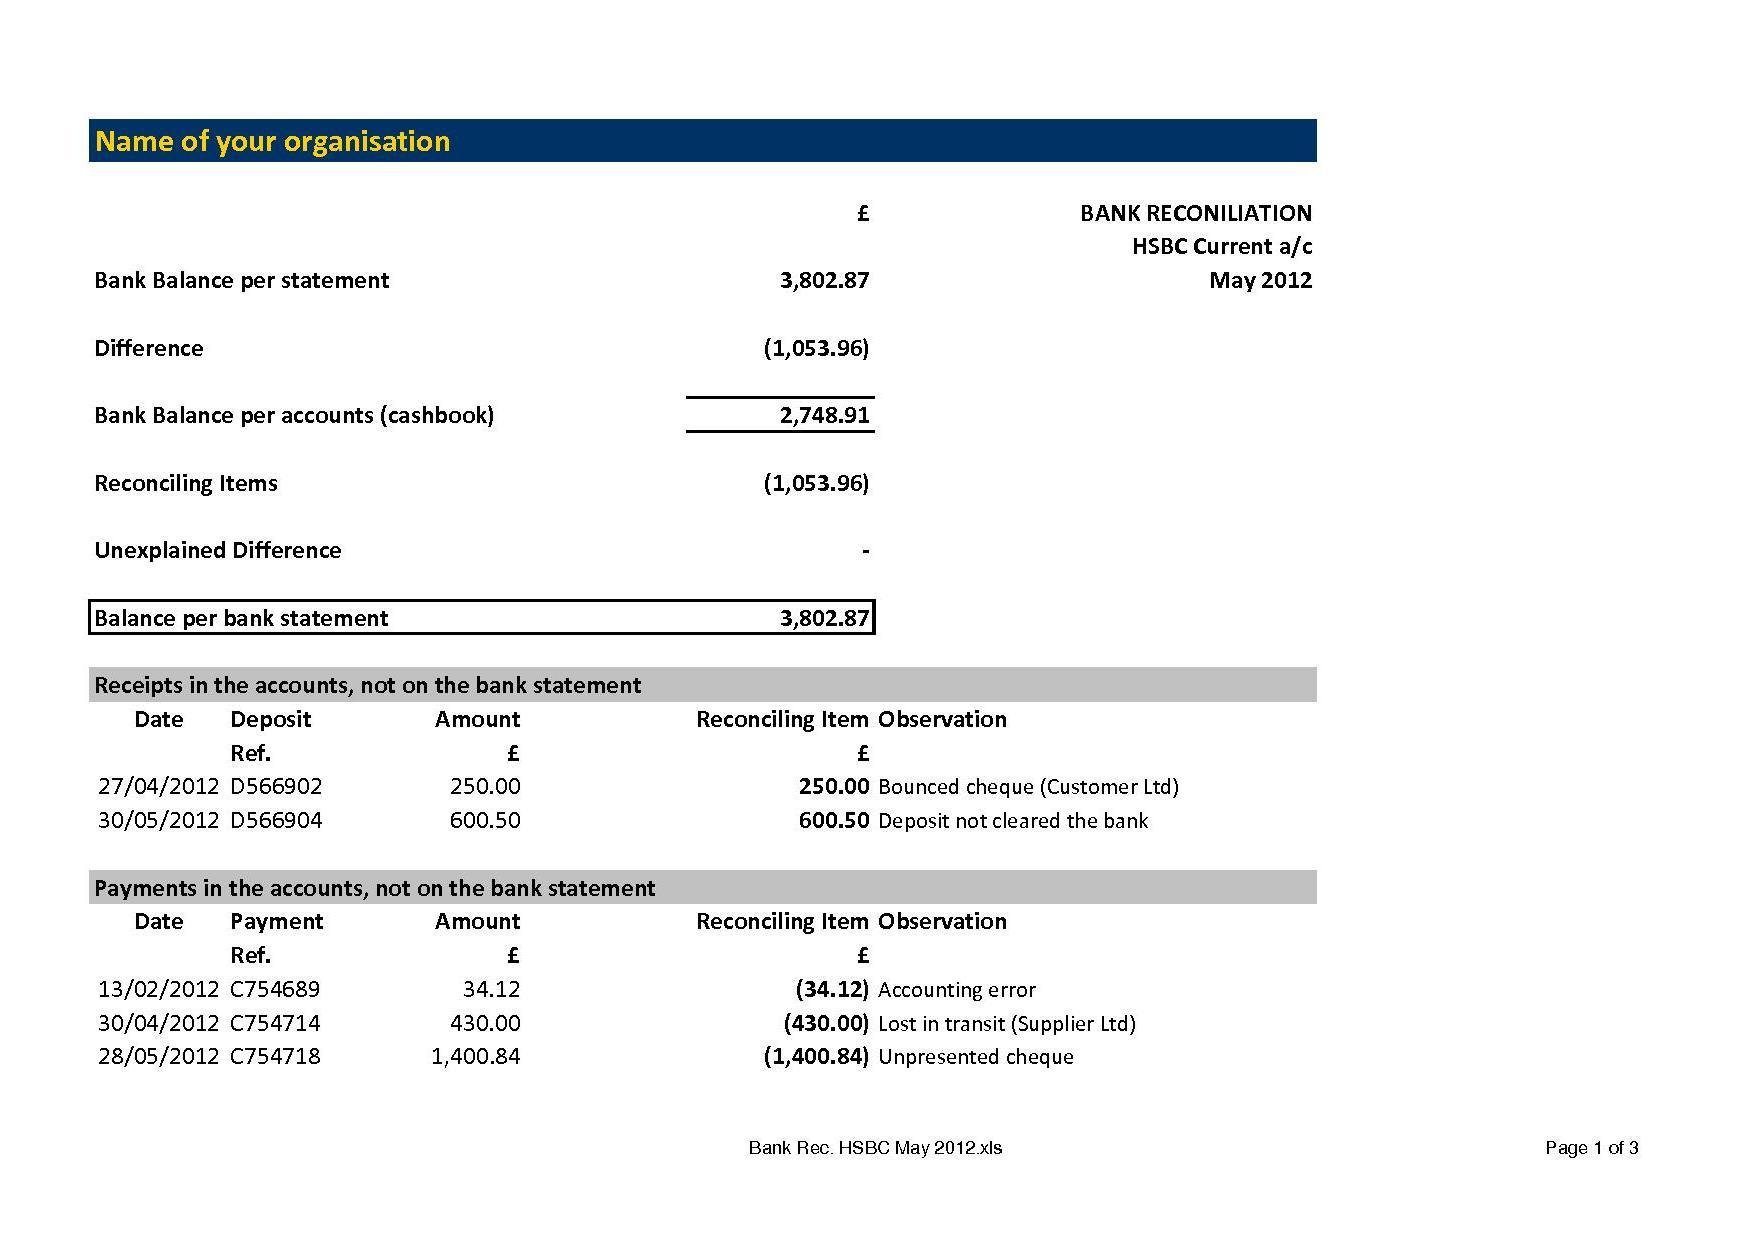 Bank reconciliation worksheet example